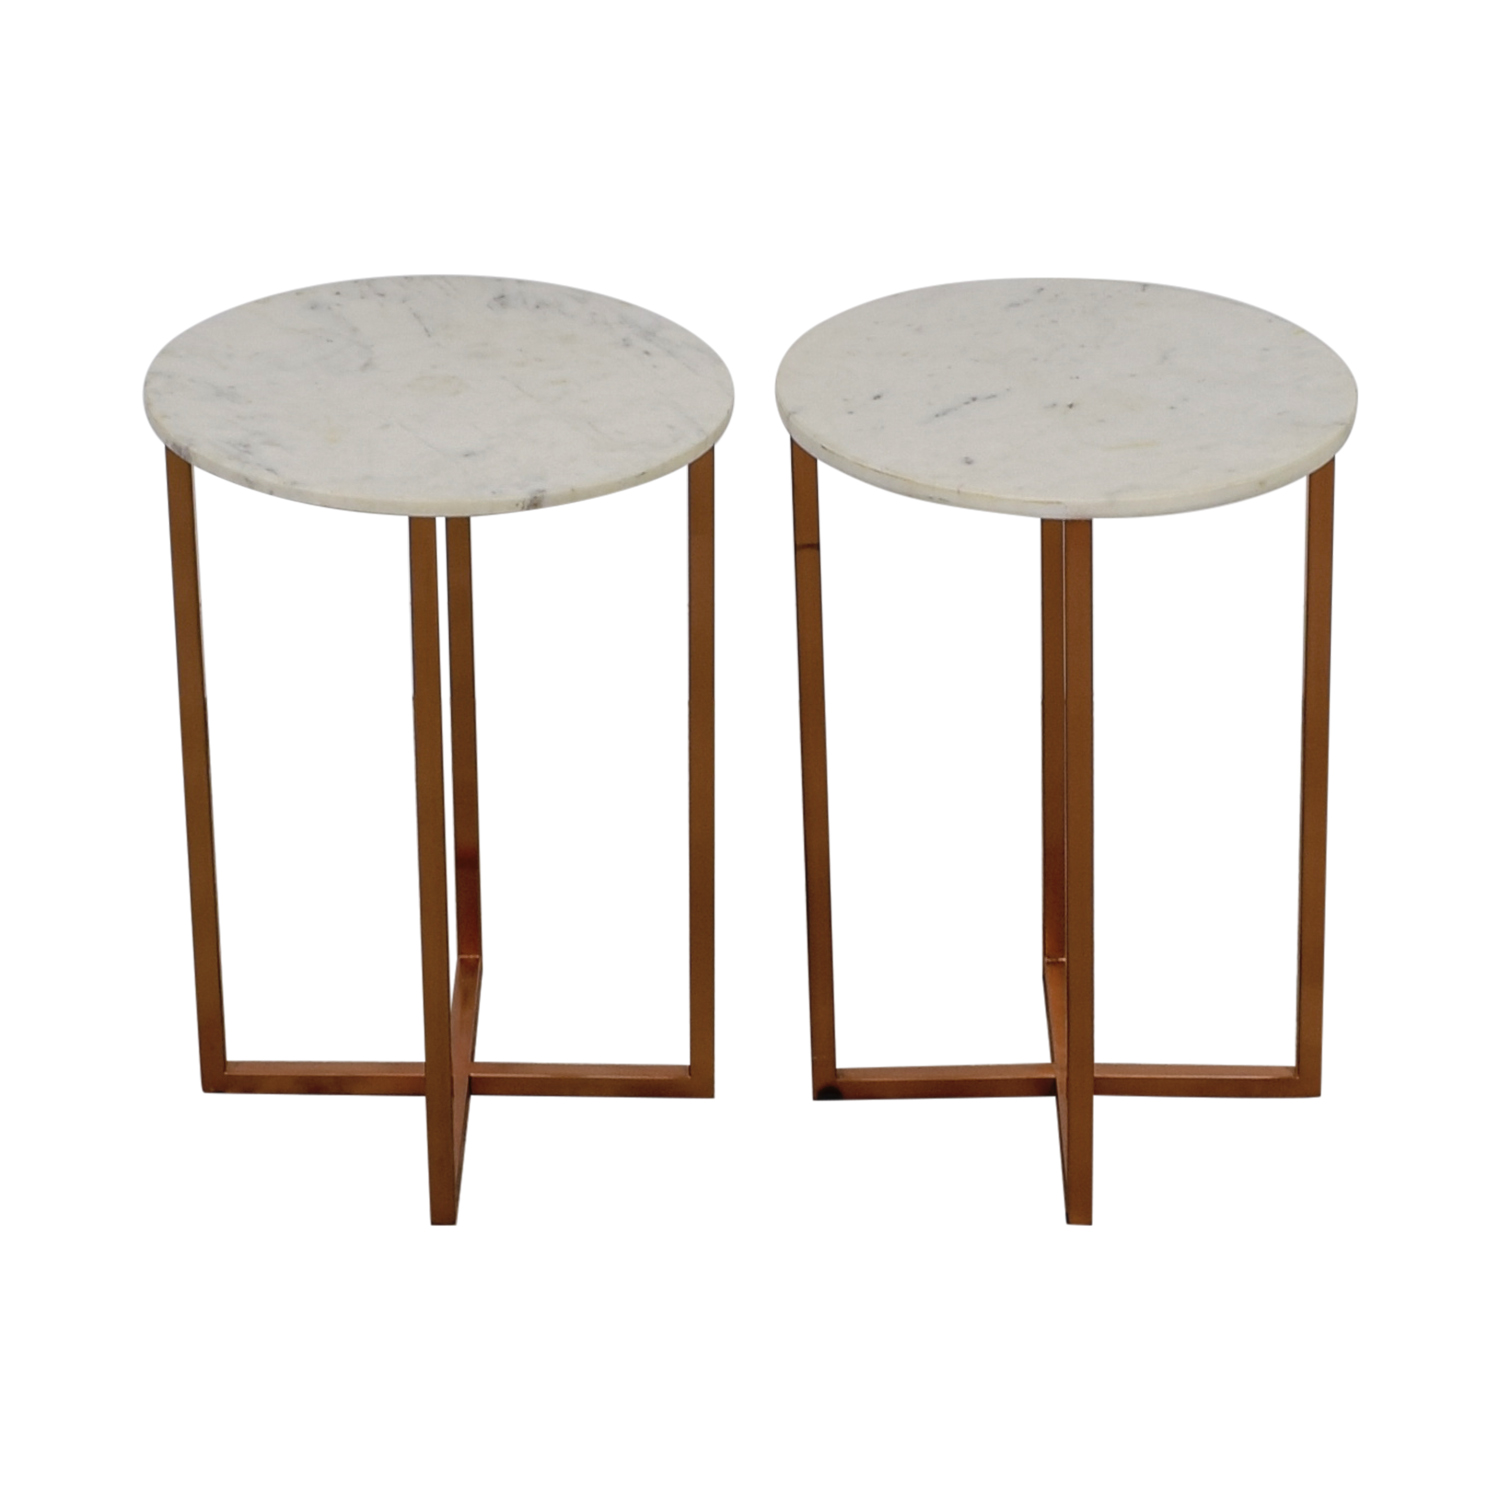 OFF Marble Top Copper Accent Tables Tables - Copper top accent table